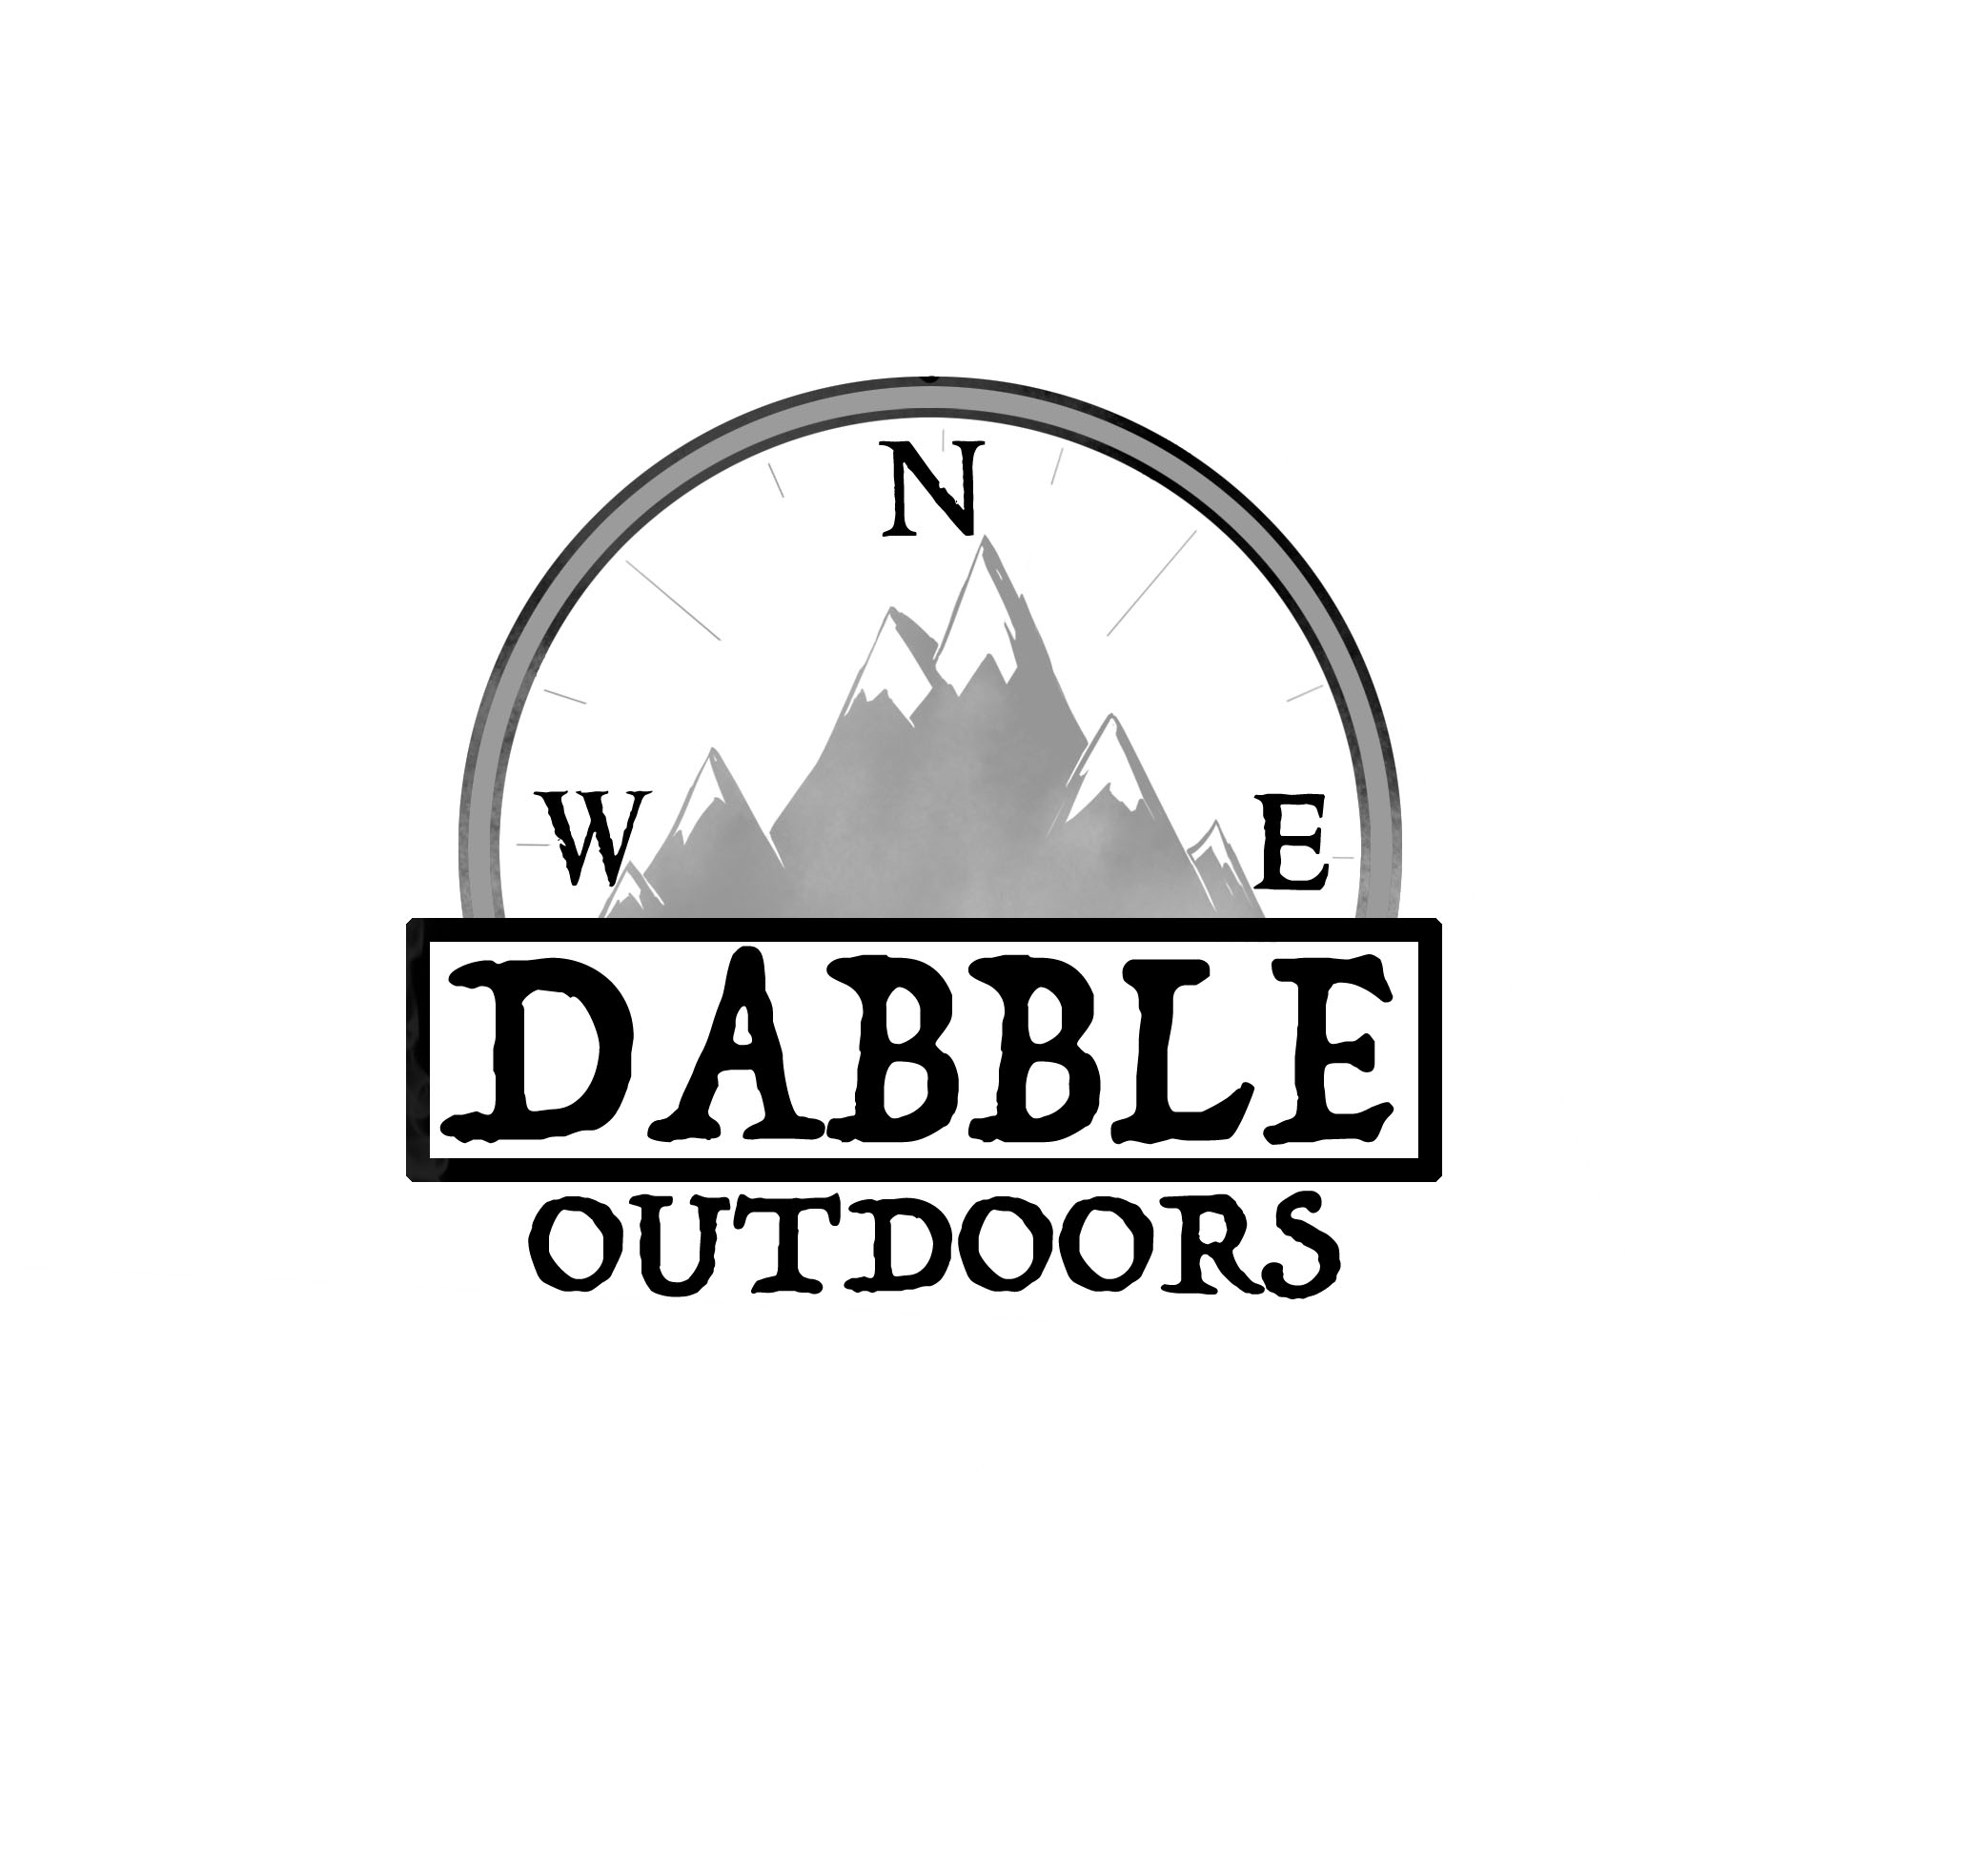 Outdoor equiment logo